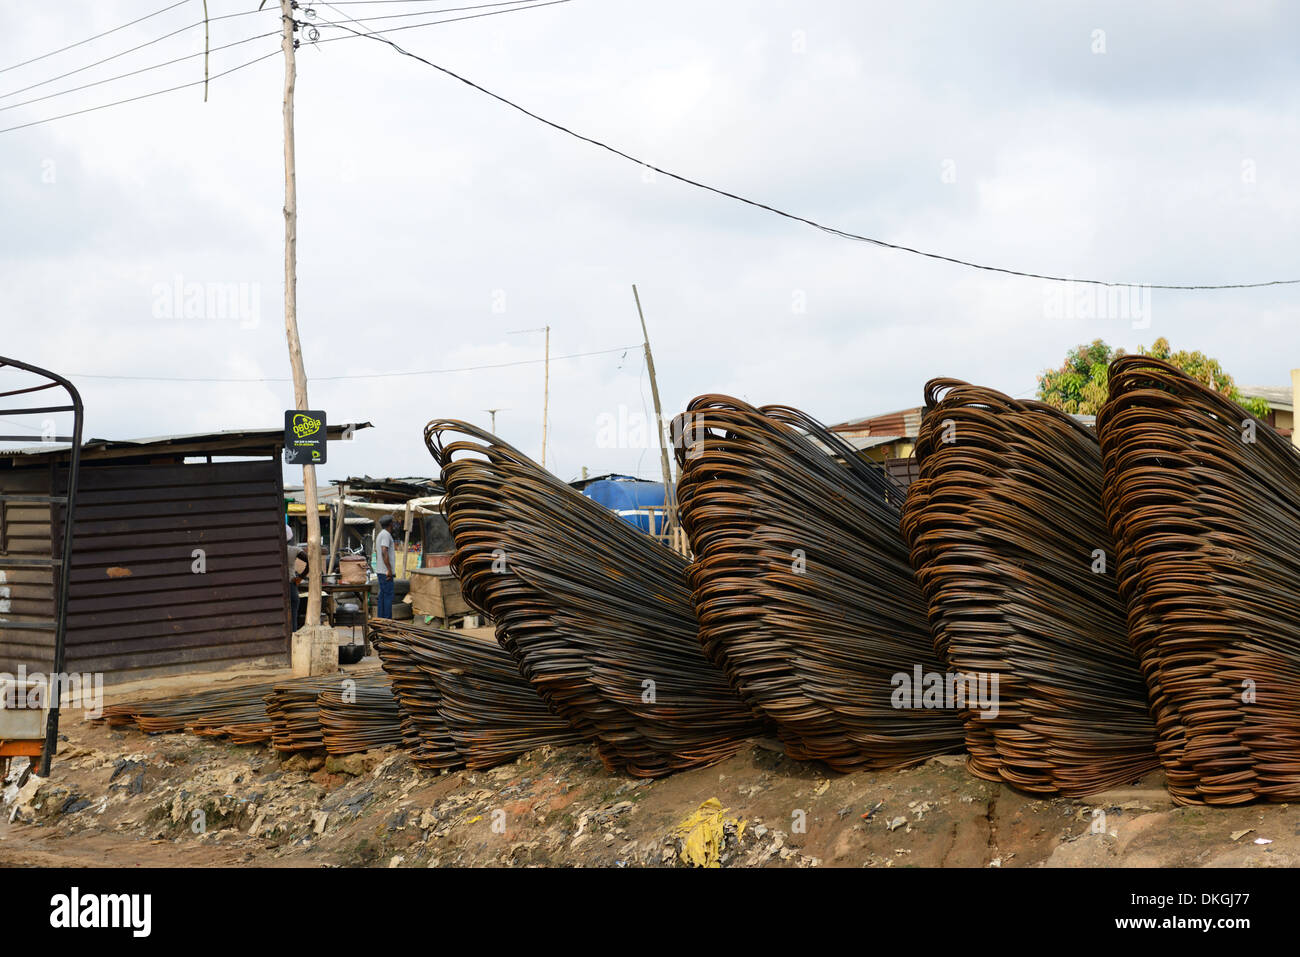 concrete steel bars iron reinforced reinforcement for sale sell market ibadan highway lagos nigeria open air outdoors rusty rust - Stock Image